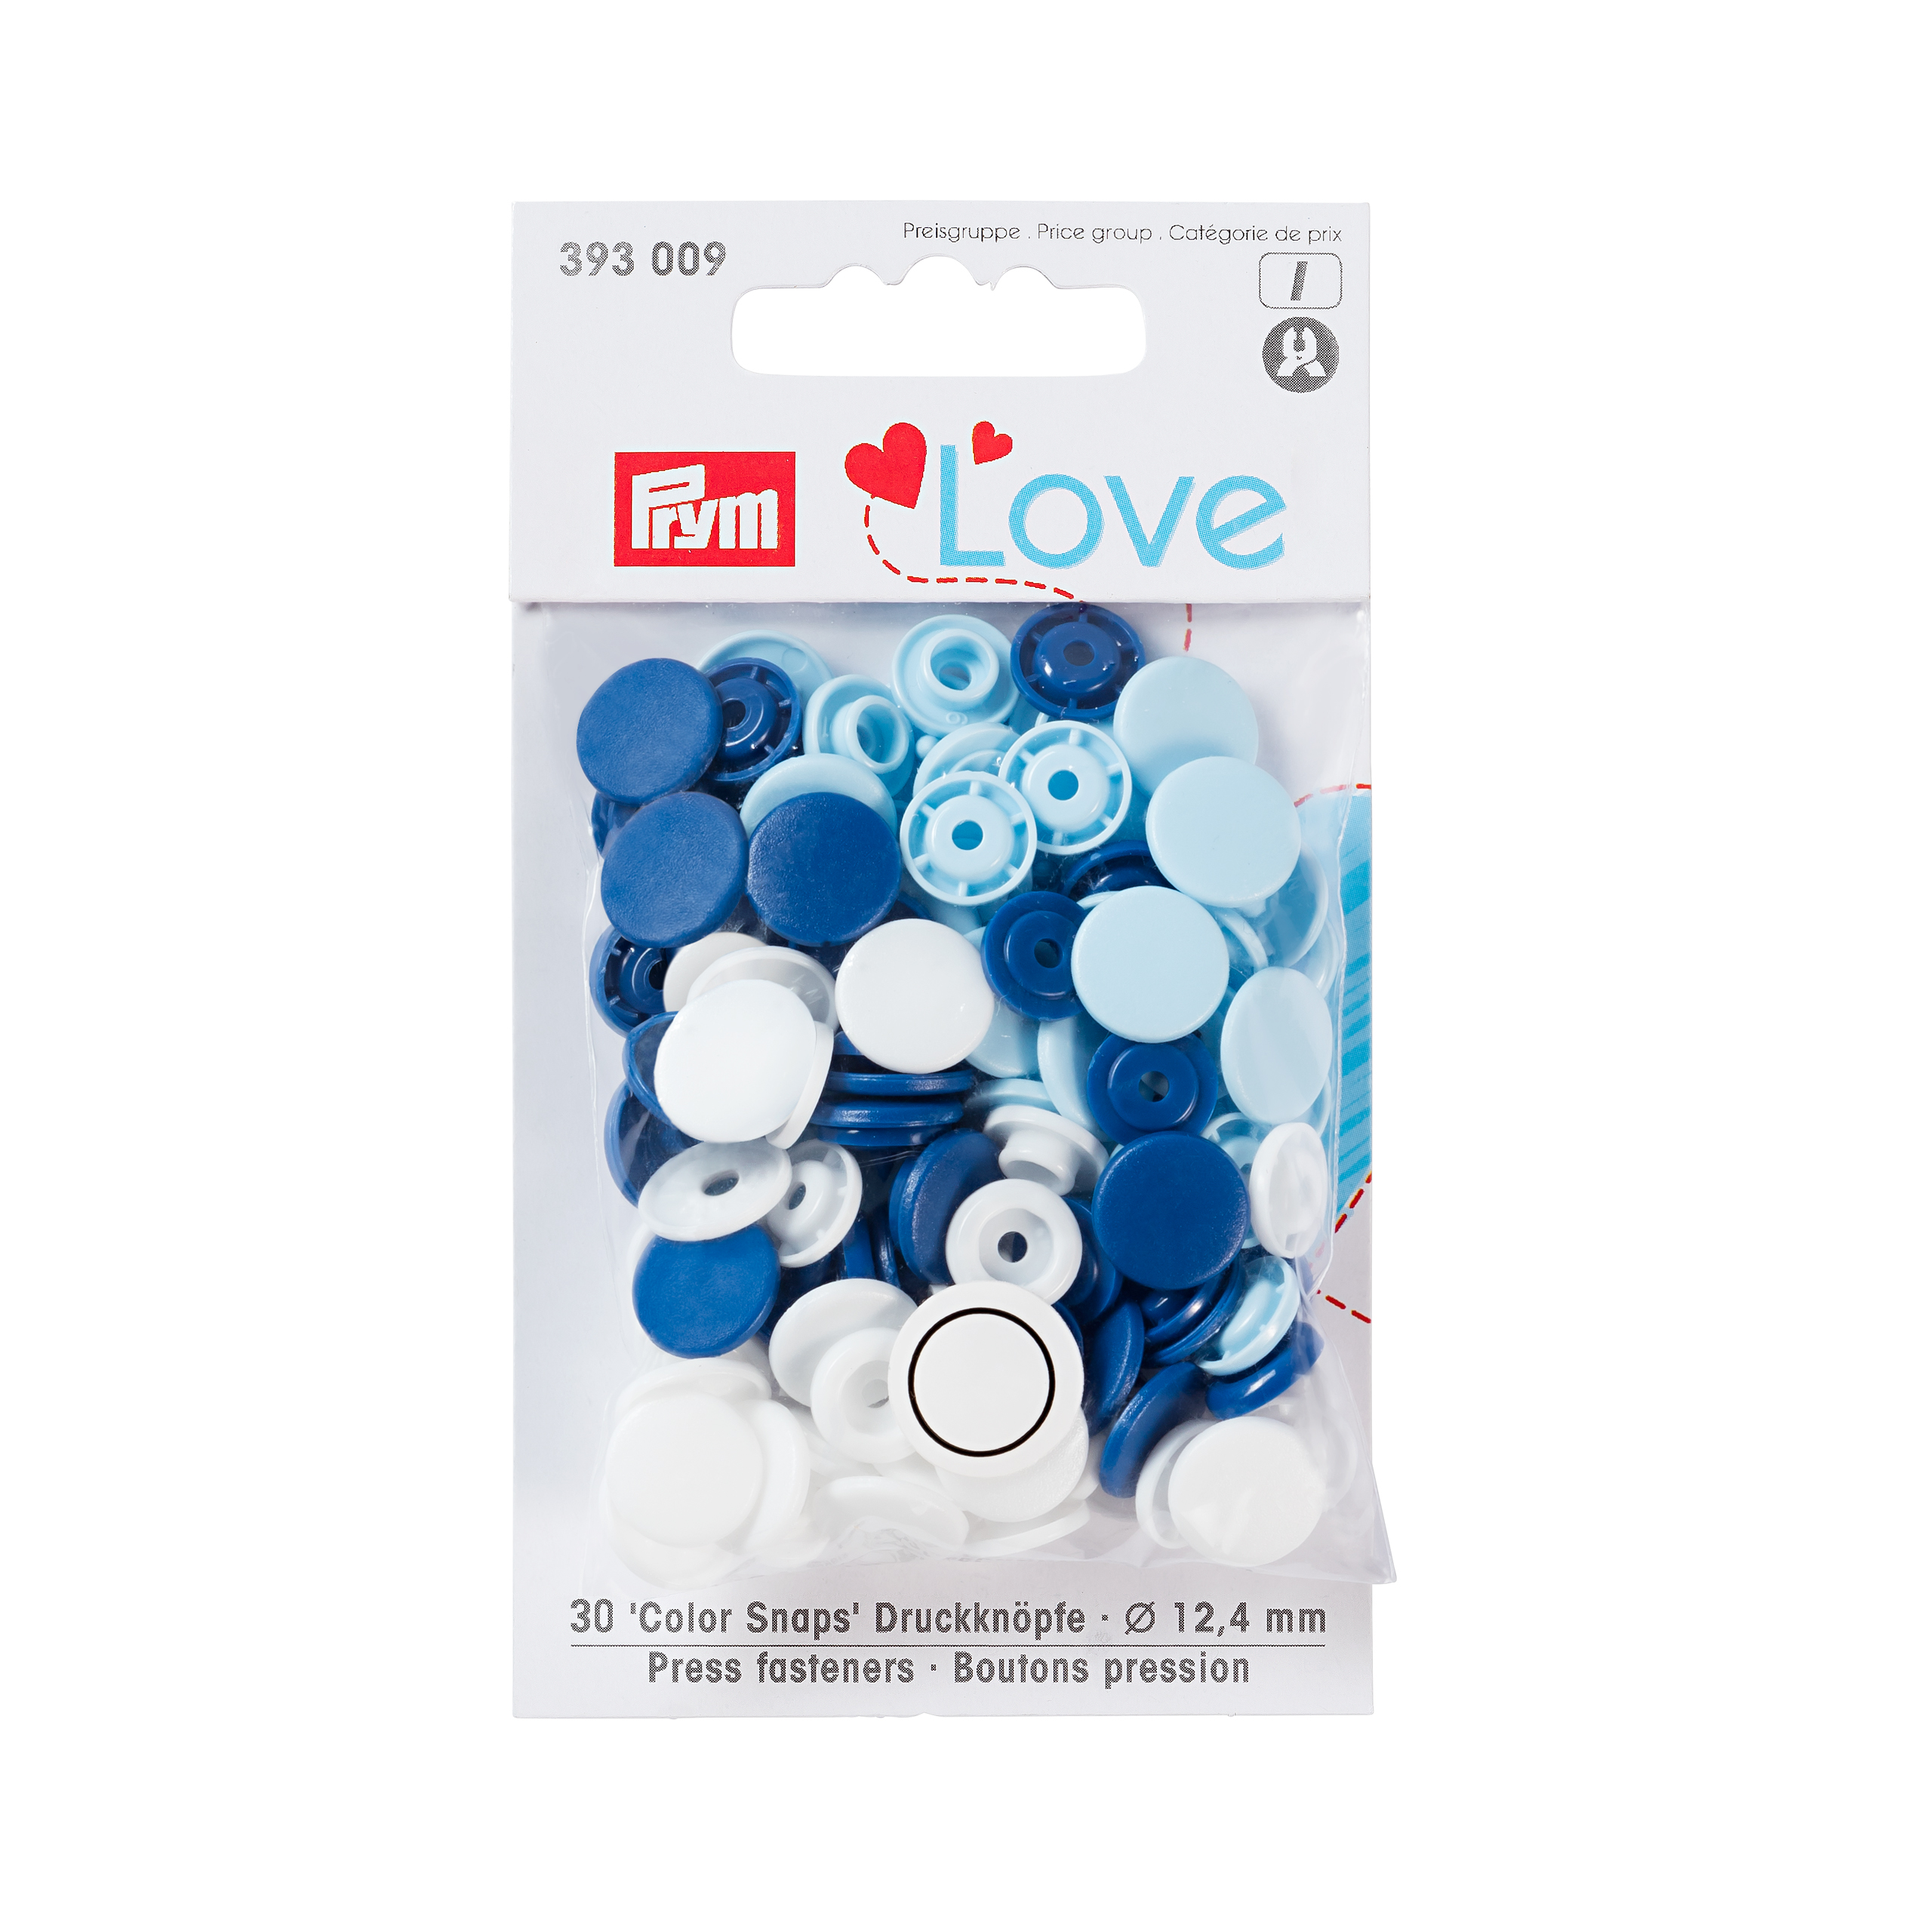 "Druckknopf Color Snaps, blau, ""Prym-Love"", Prym - Art. 393009"